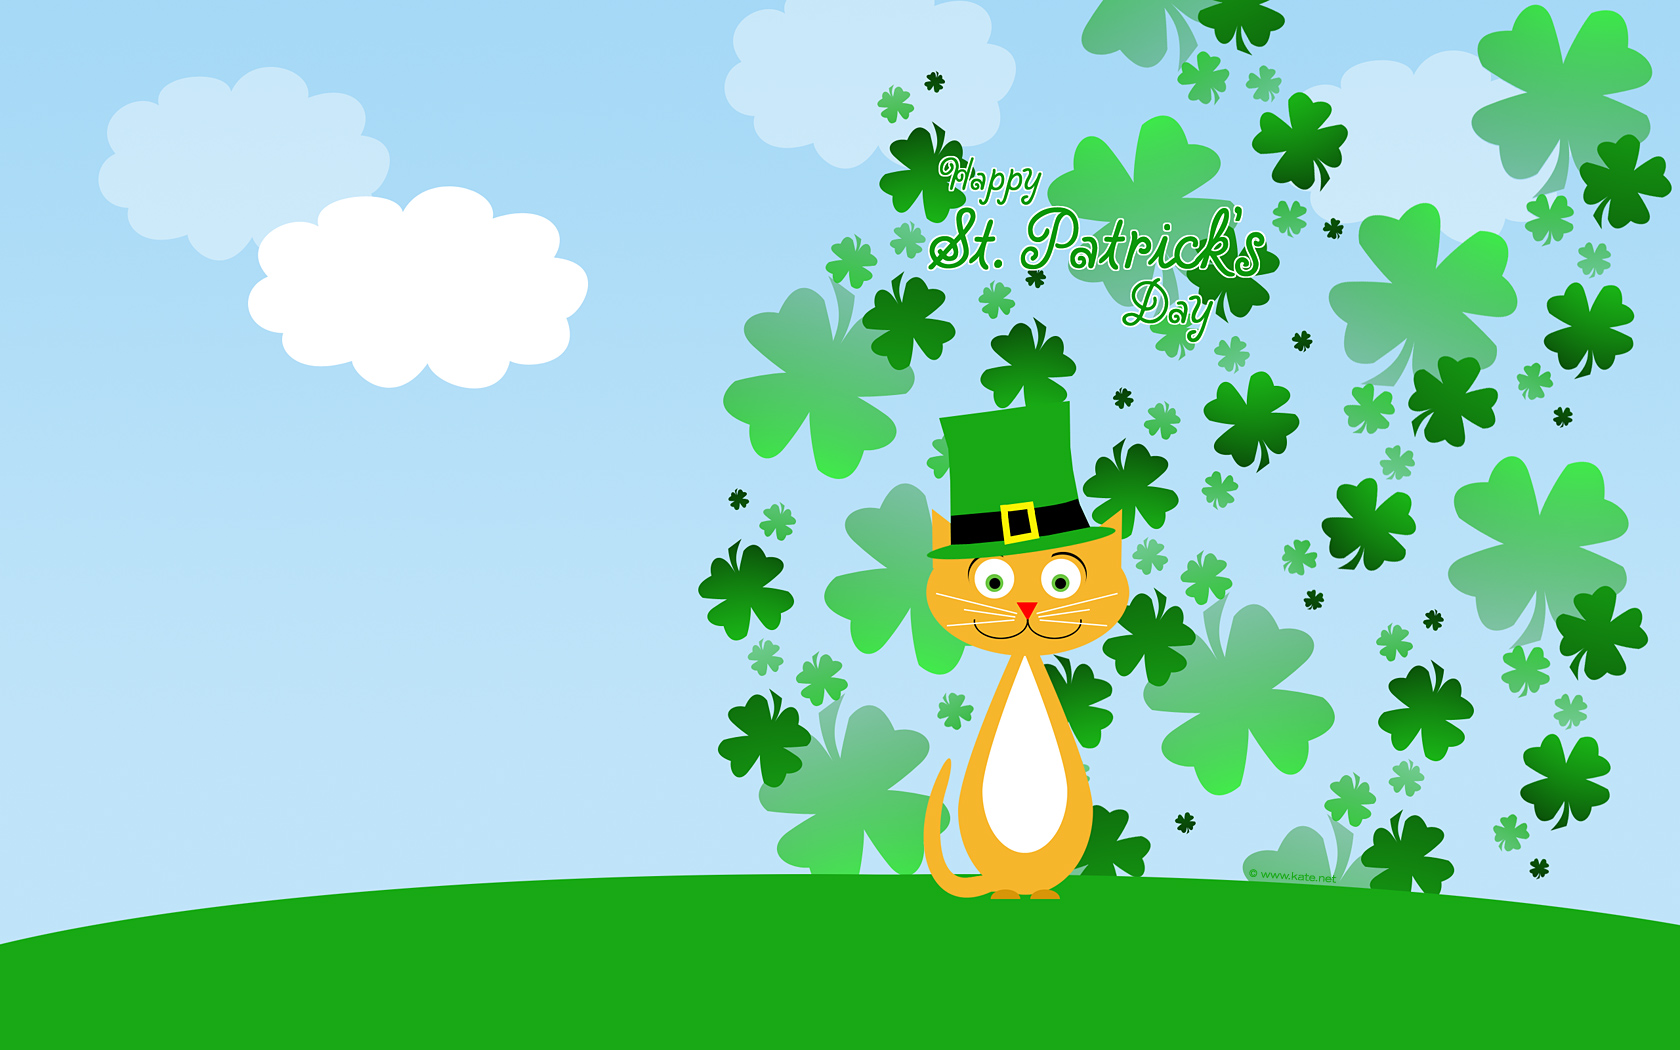 get lucky with leprechaun desktop wallpaper for st patrick s day